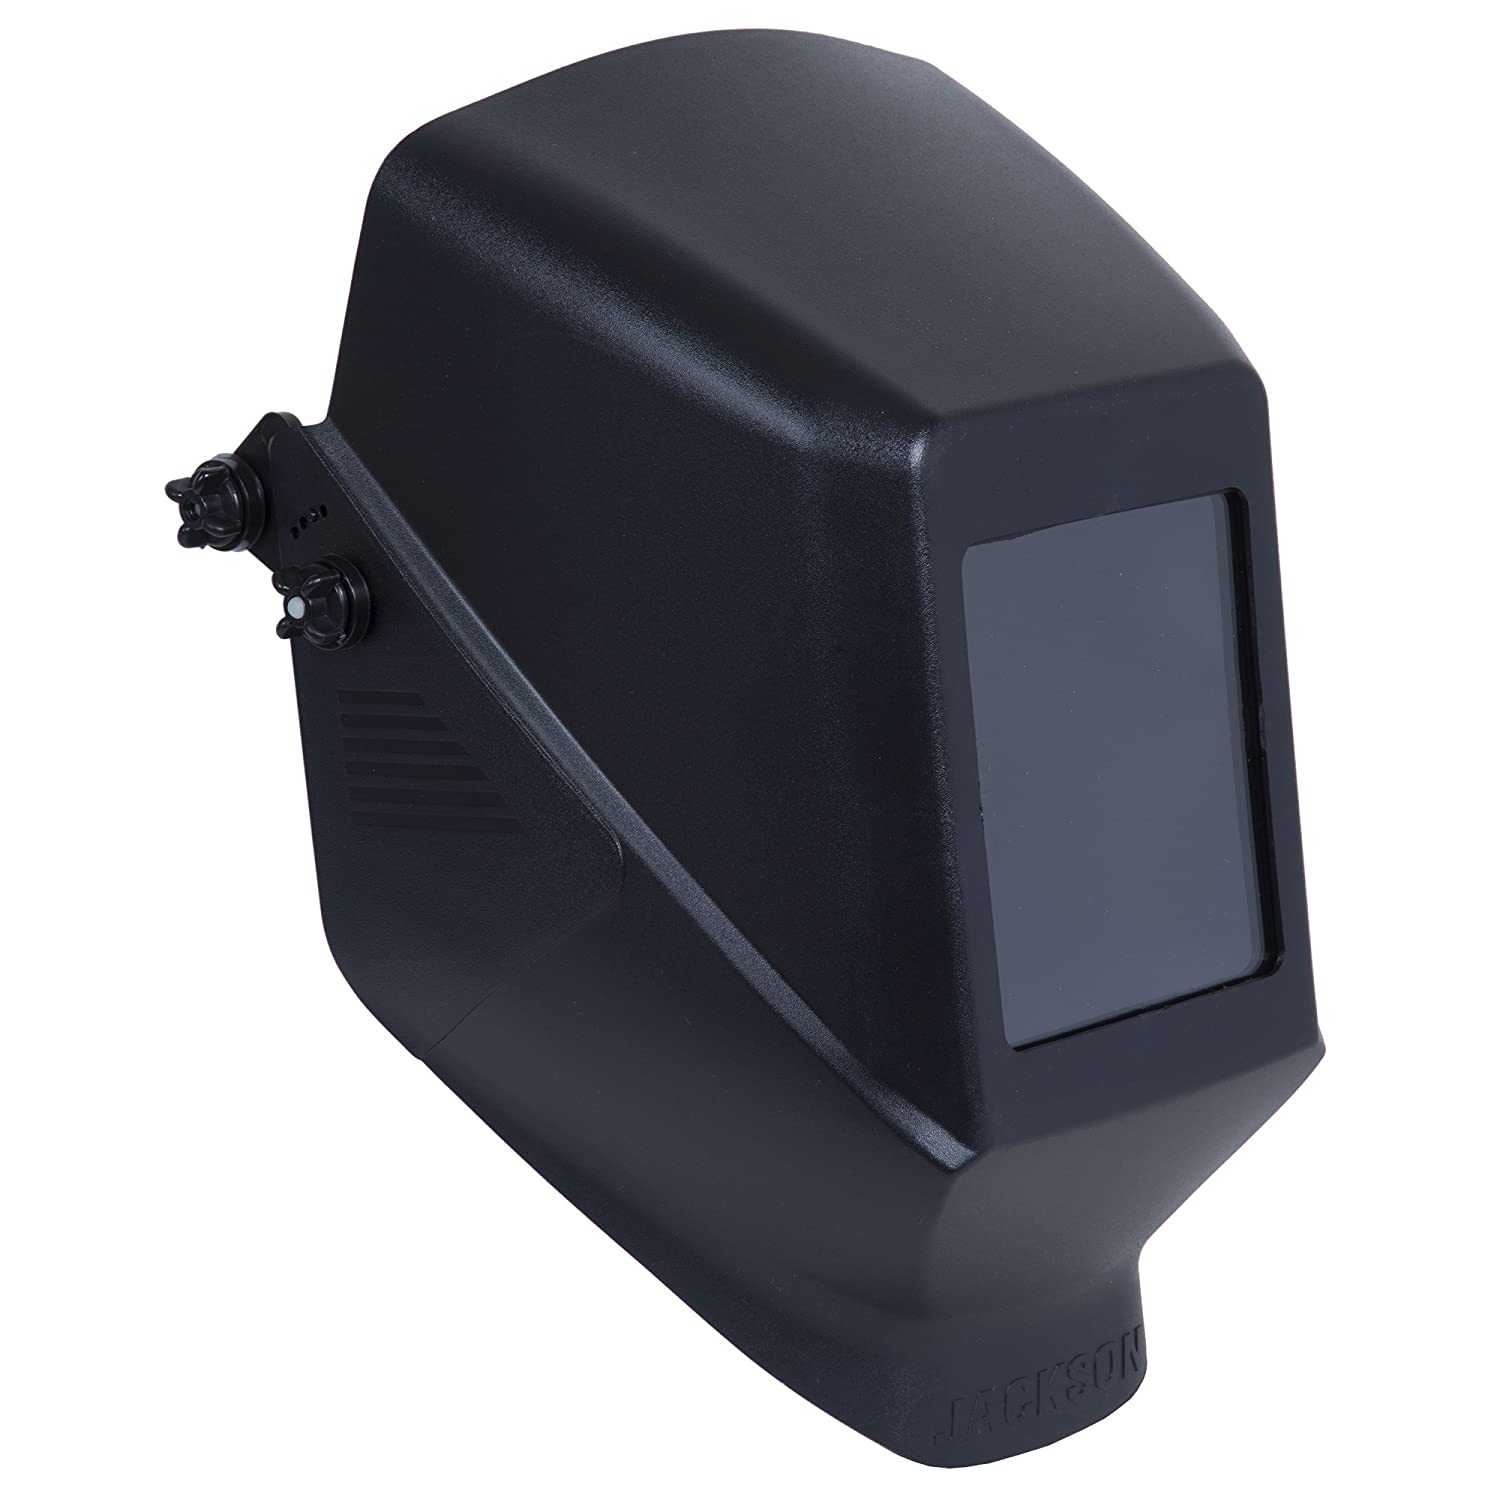 Black 4 Units//Case Kimberly-Clark Professional 14975 Jackson Safety Fixed Shade HSL 100 Welding Helmet with 187 Mounting Blades